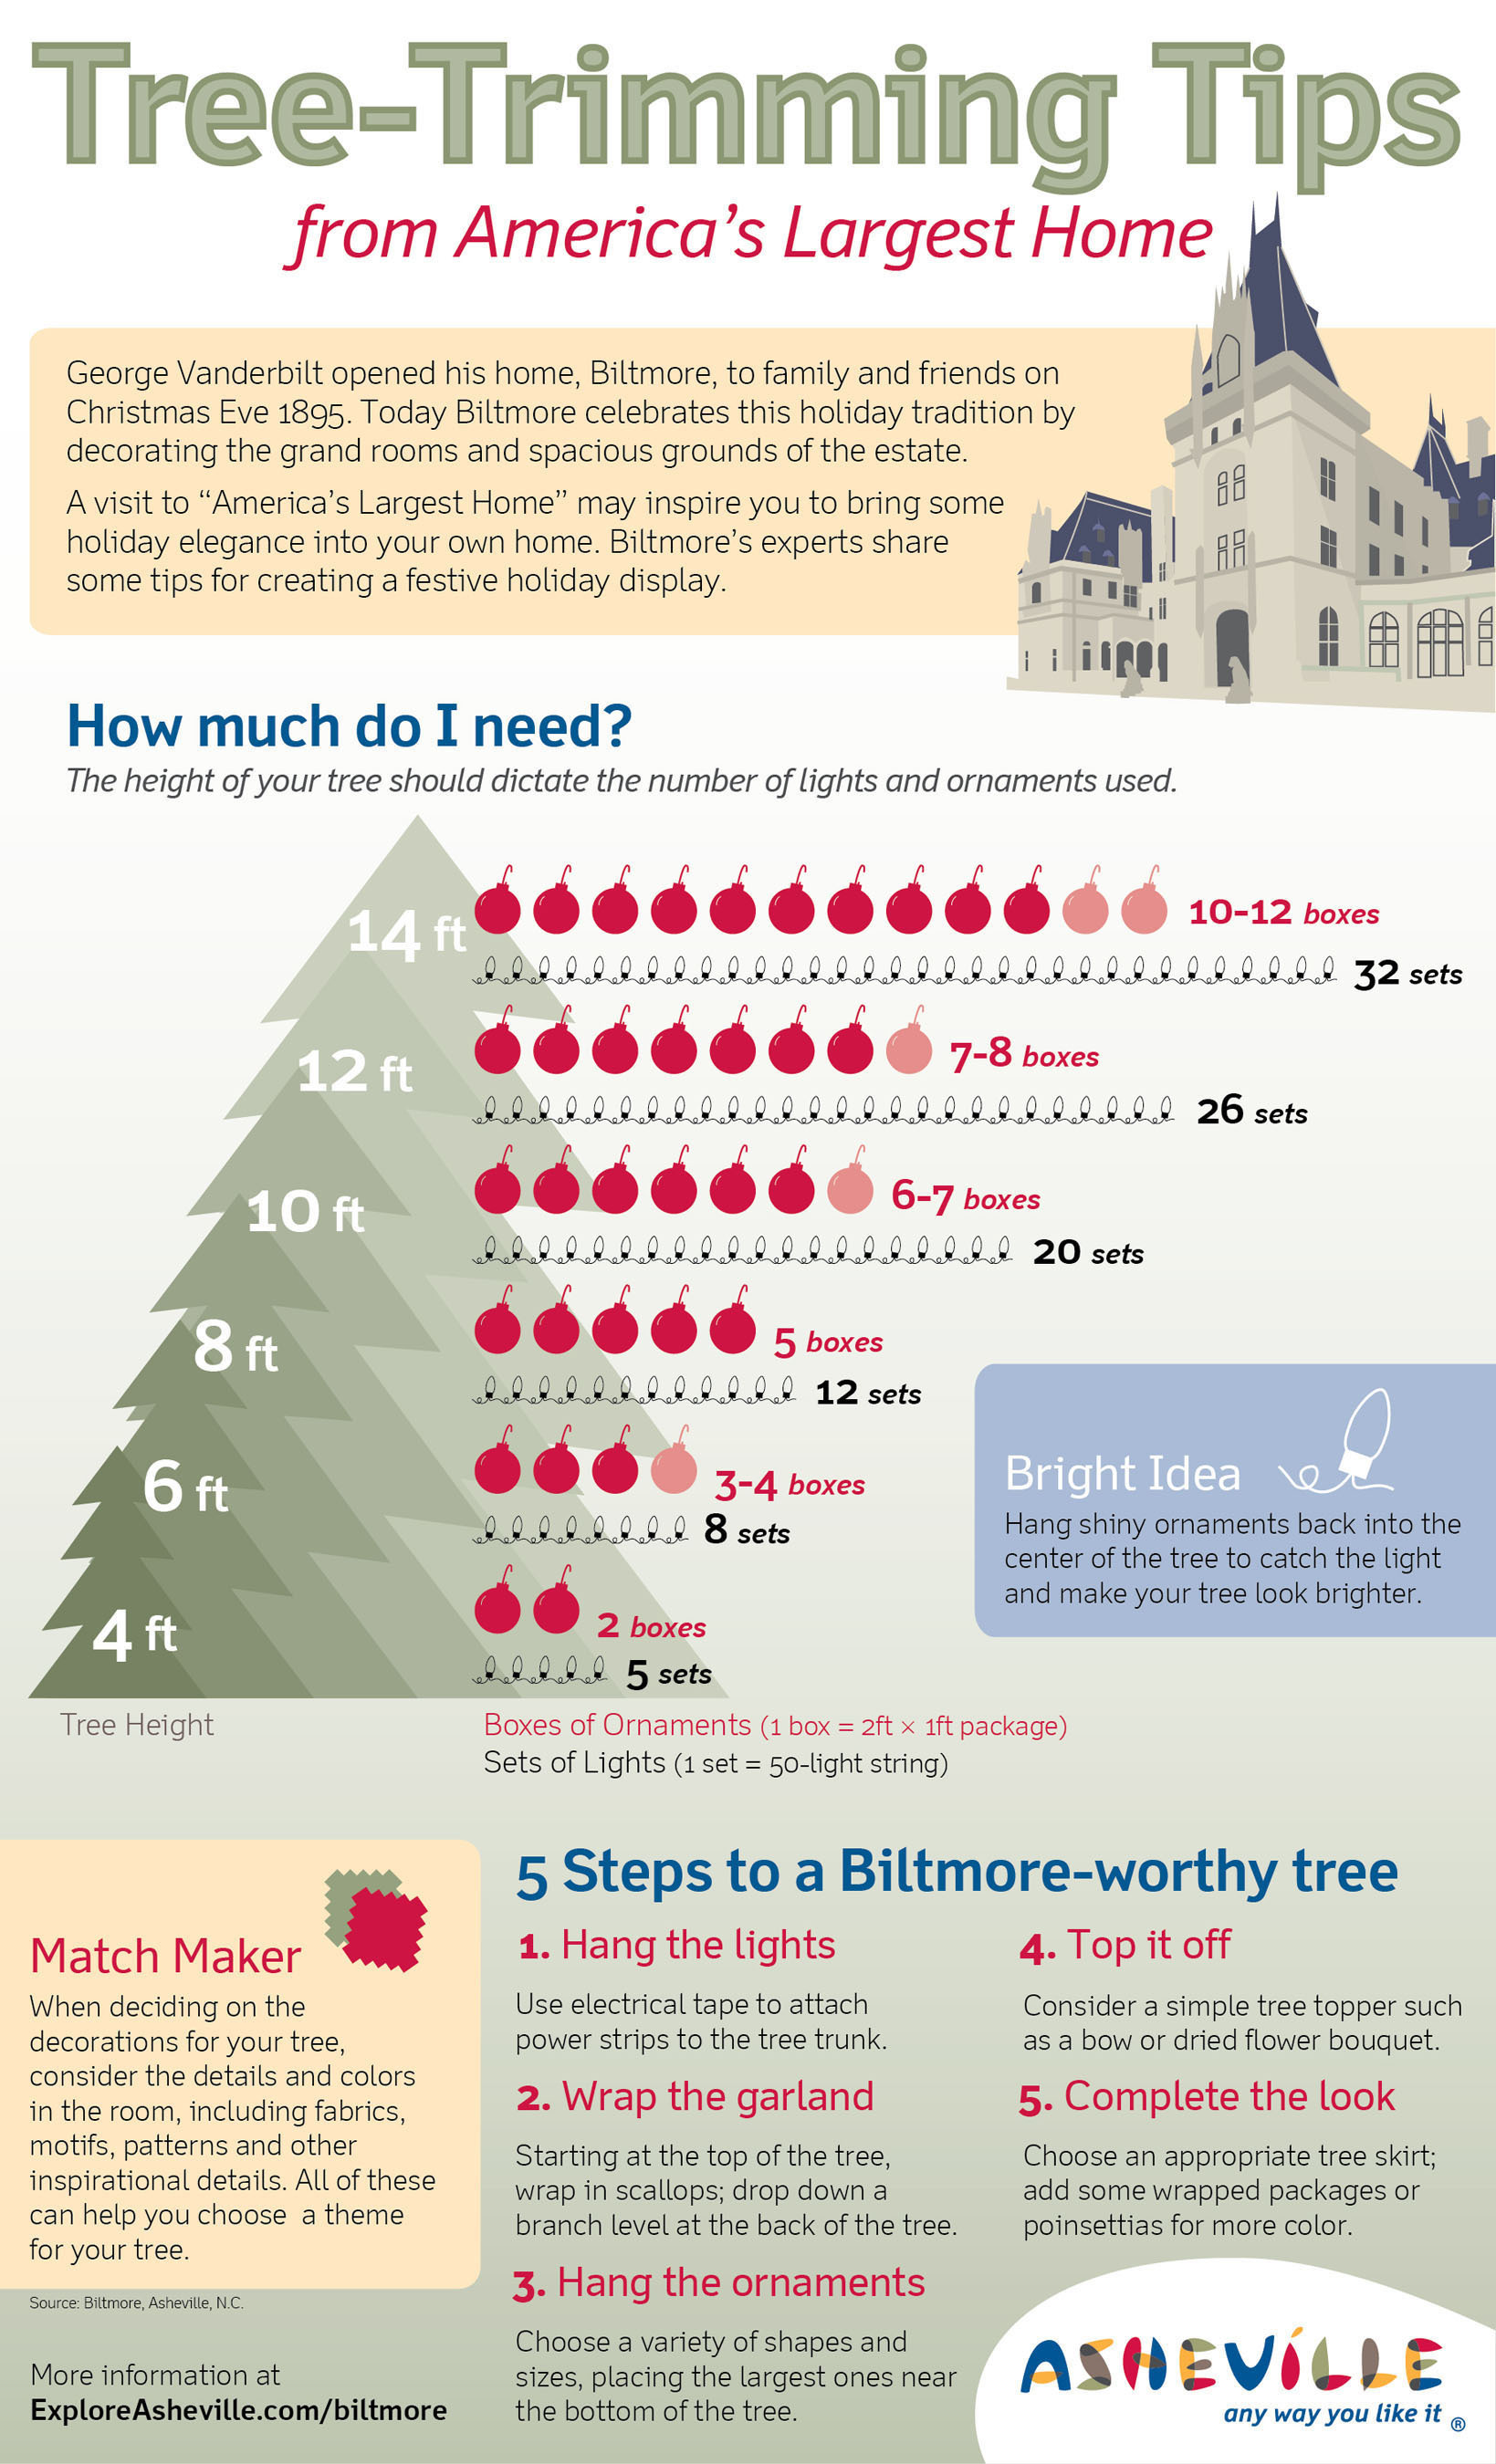 Christmas Decorating Ideas from Biltmore and Easy Holiday Recipes